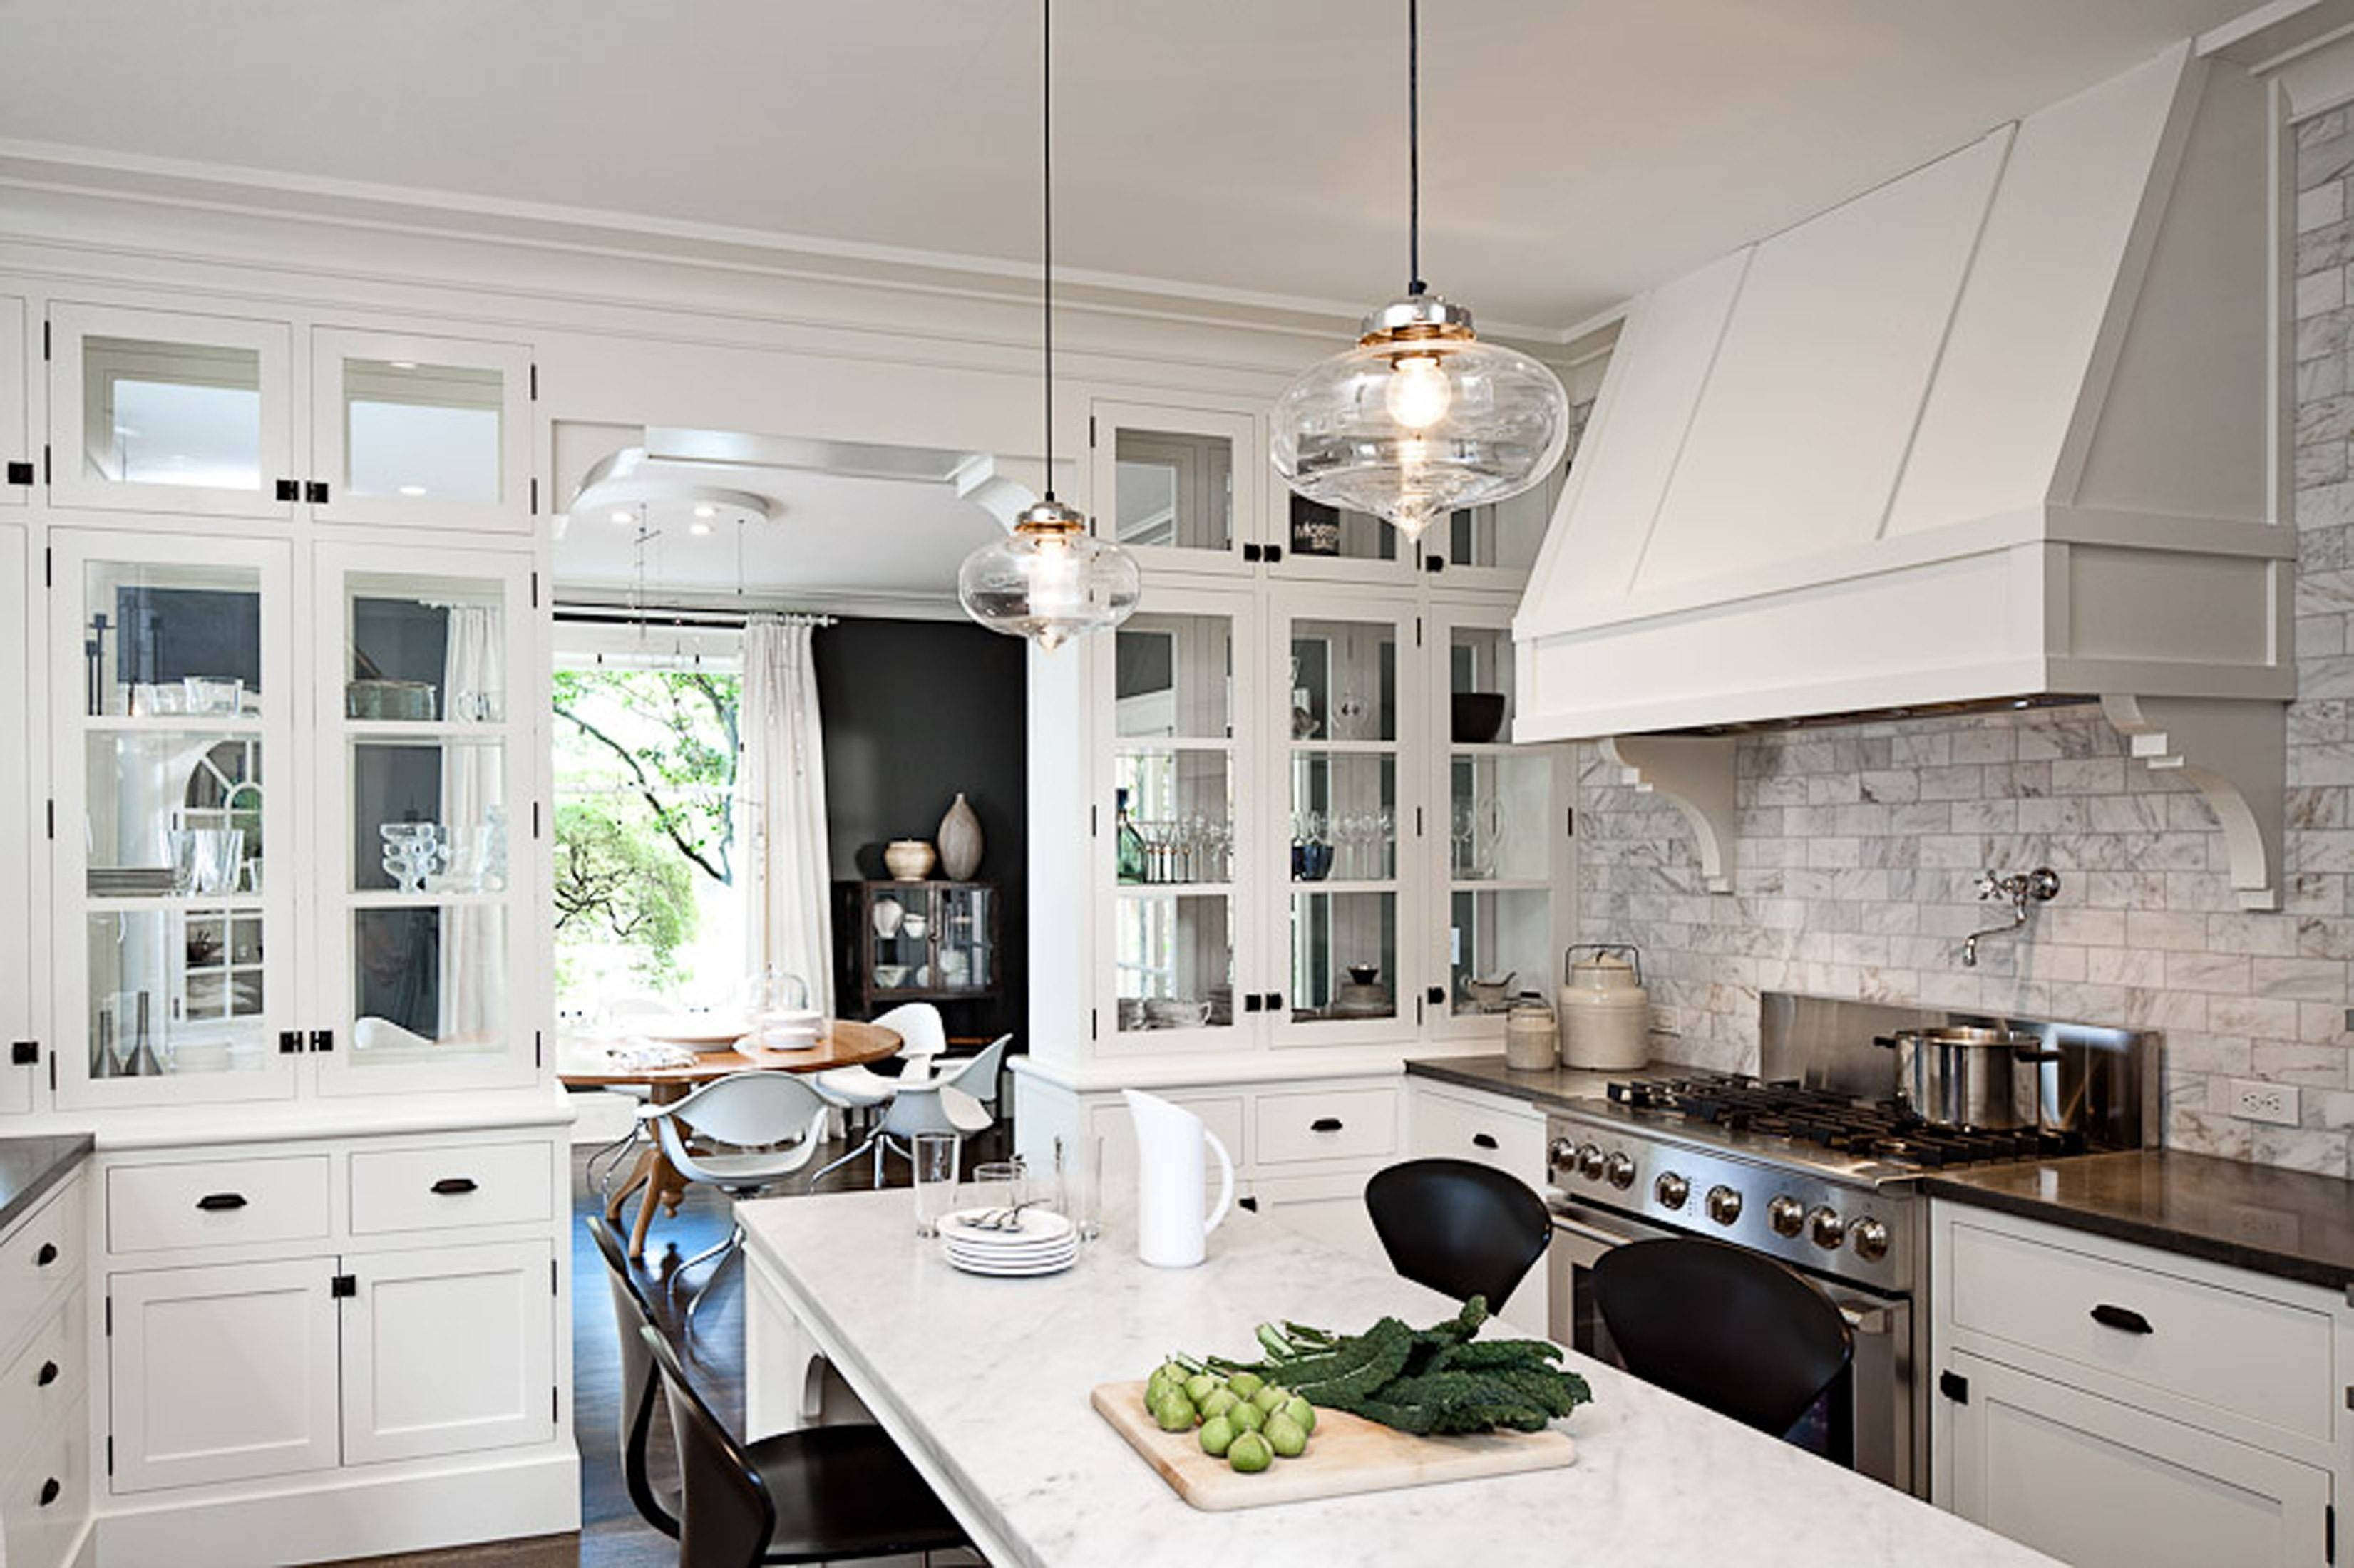 Hanging Lights For Kitchen Stainless Steel Kitchen Pendant Light Pertaining To Stainless Steel Kitchen Pendant Lights (View 4 of 15)